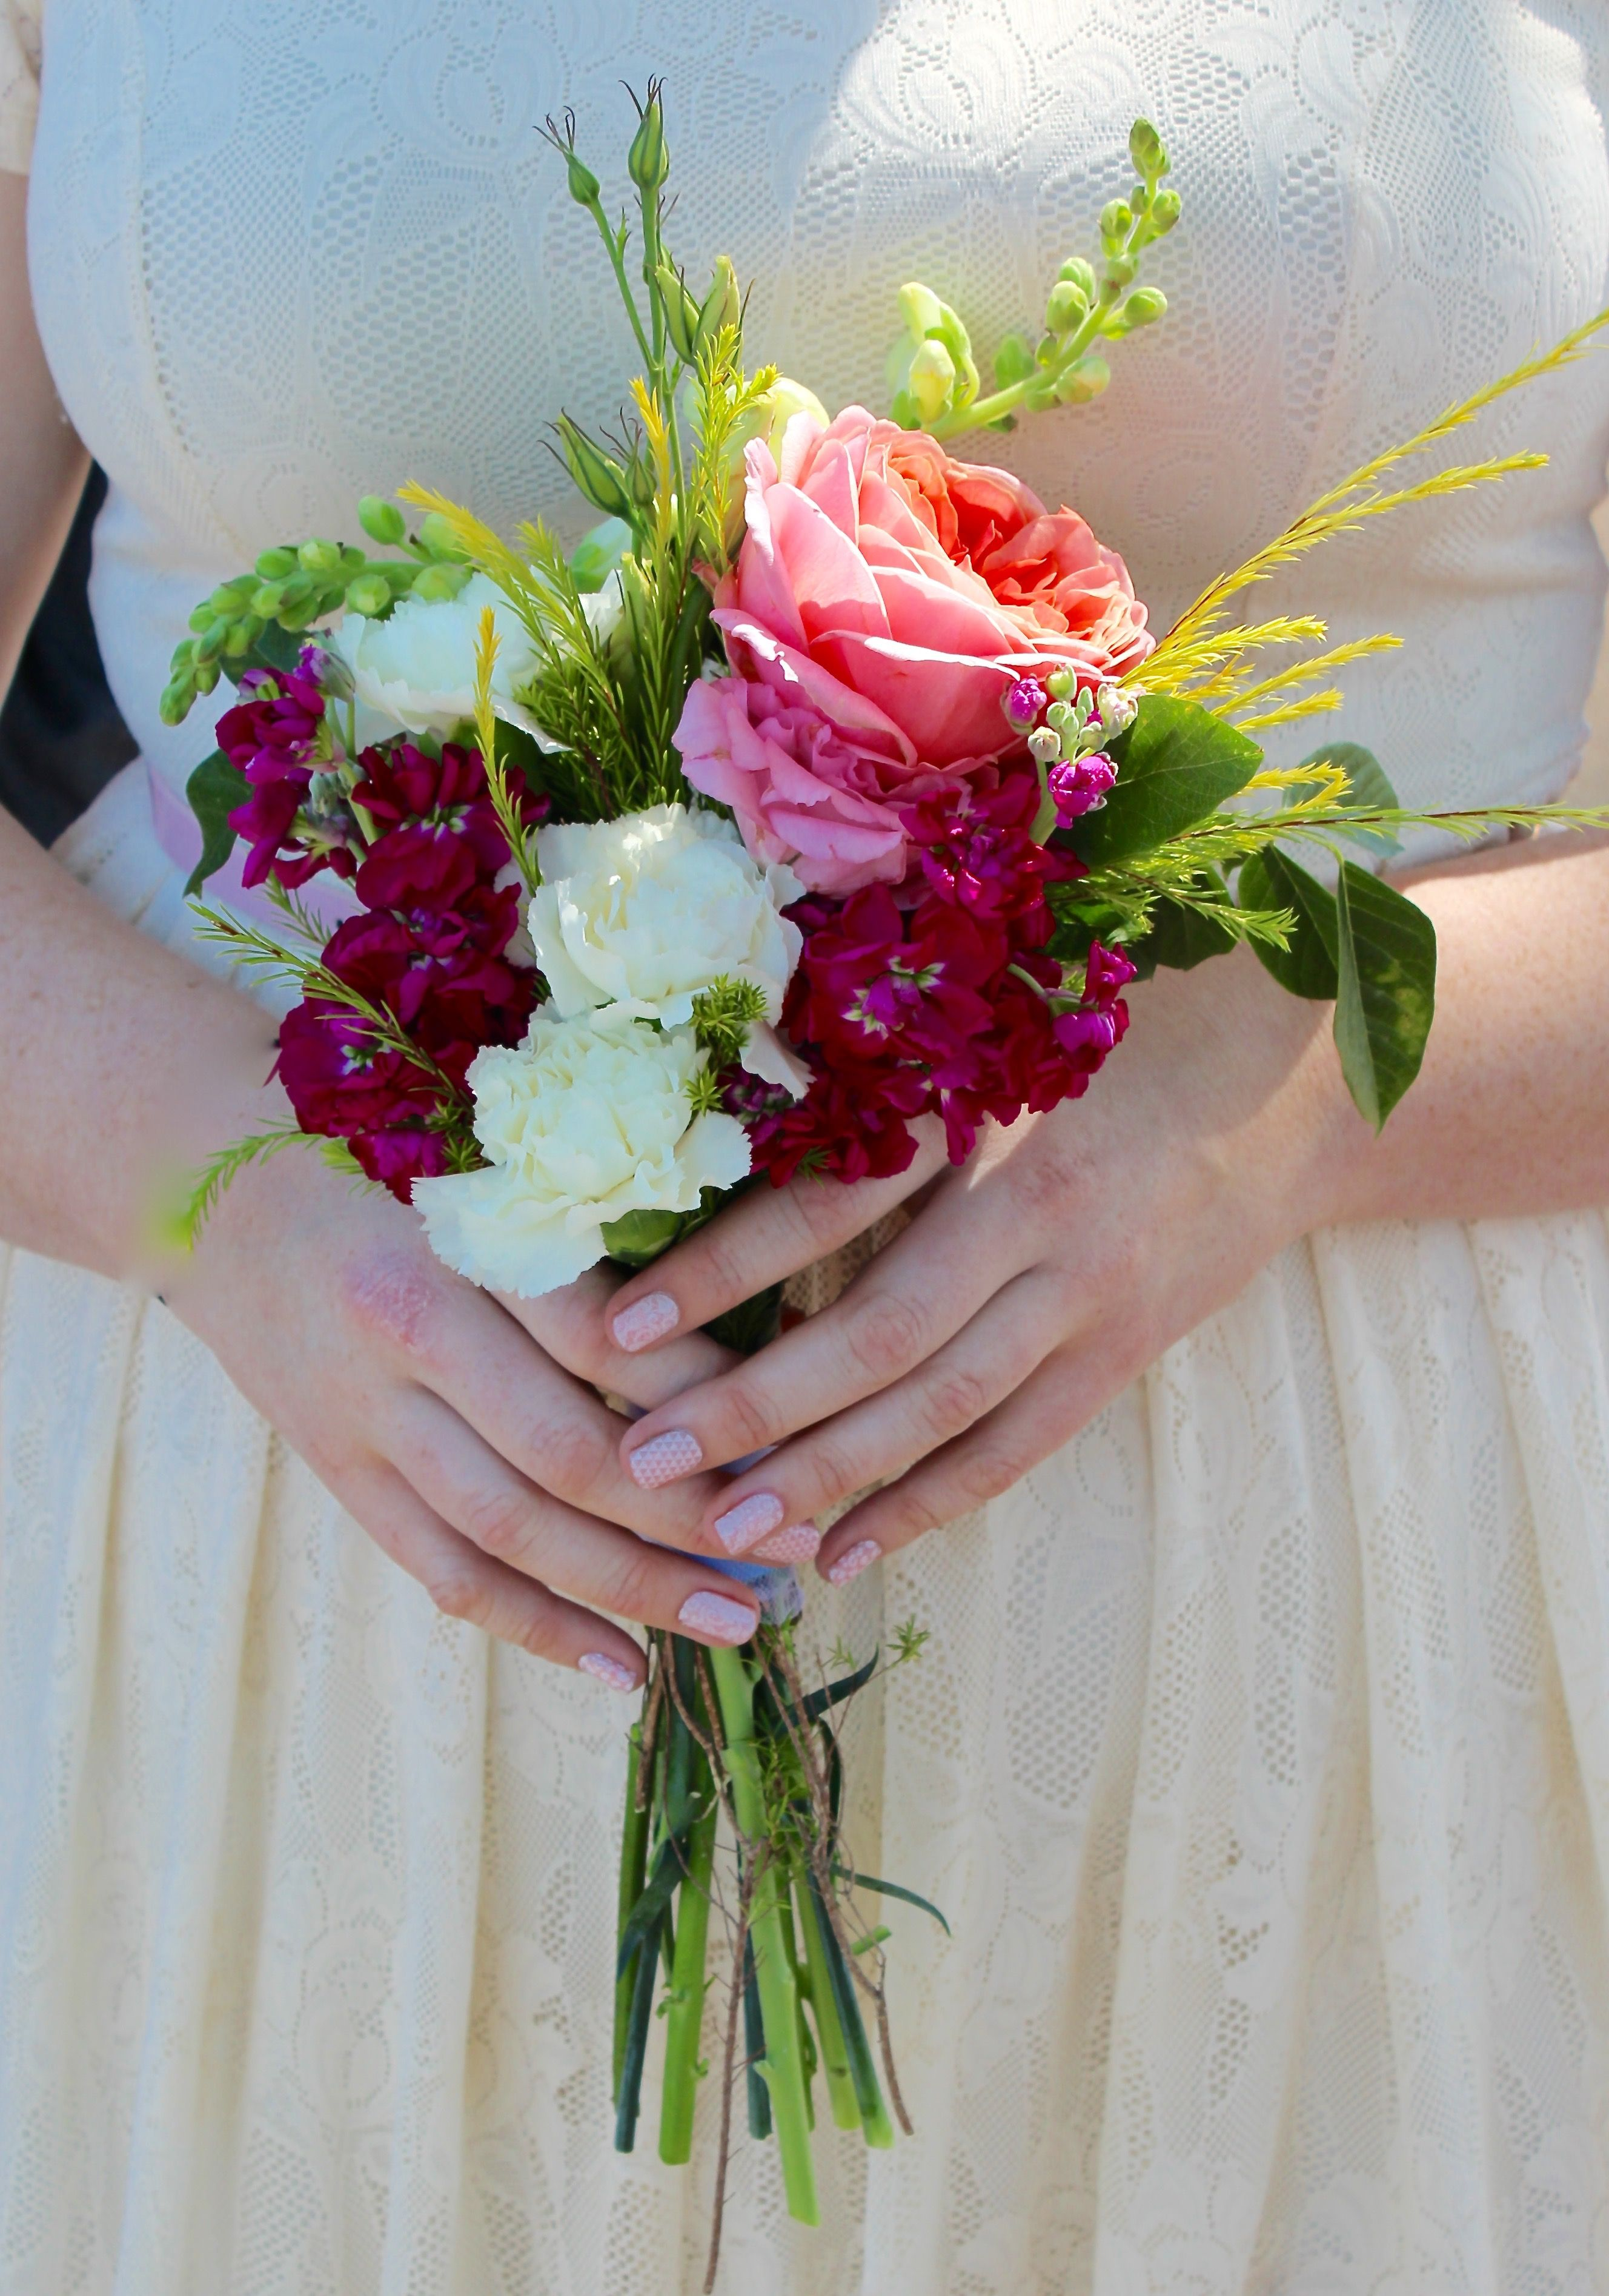 Bridesmaids Bouquet Small Nosegay With Antique Pink Cabbage Rose